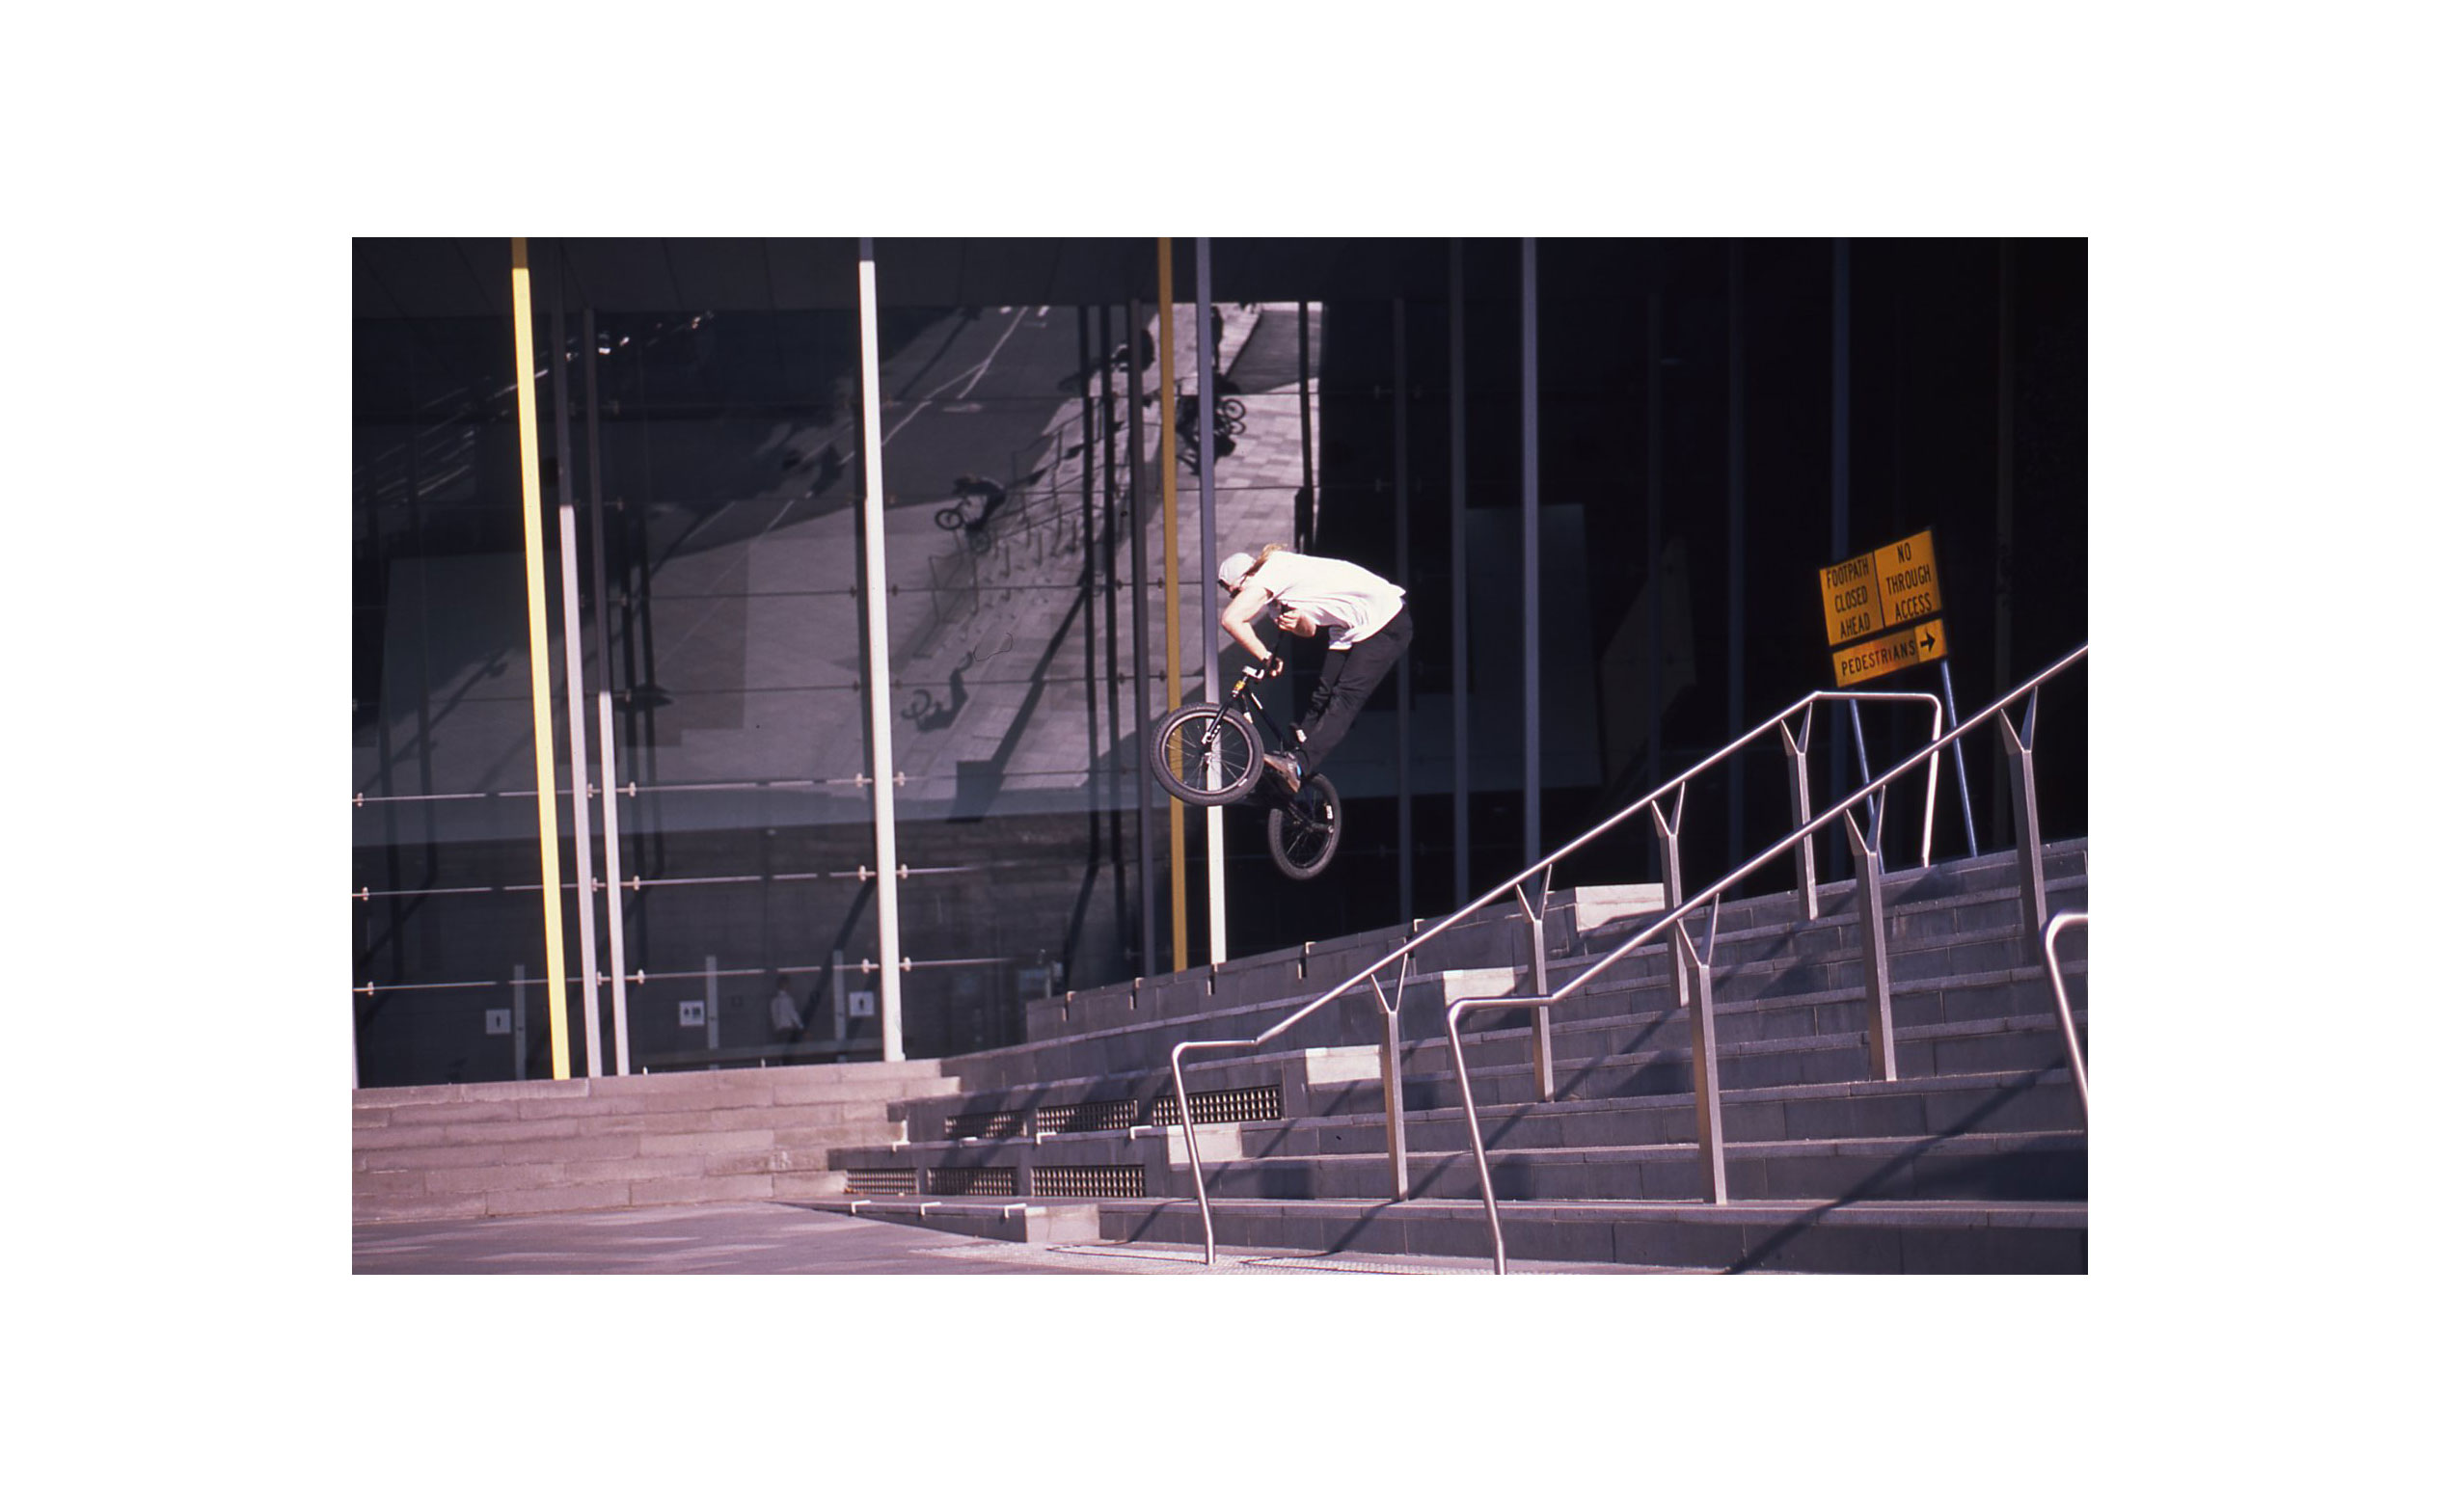 Bradley Anderson - Insanely twisted x-up doubled up by his reflection in the background.